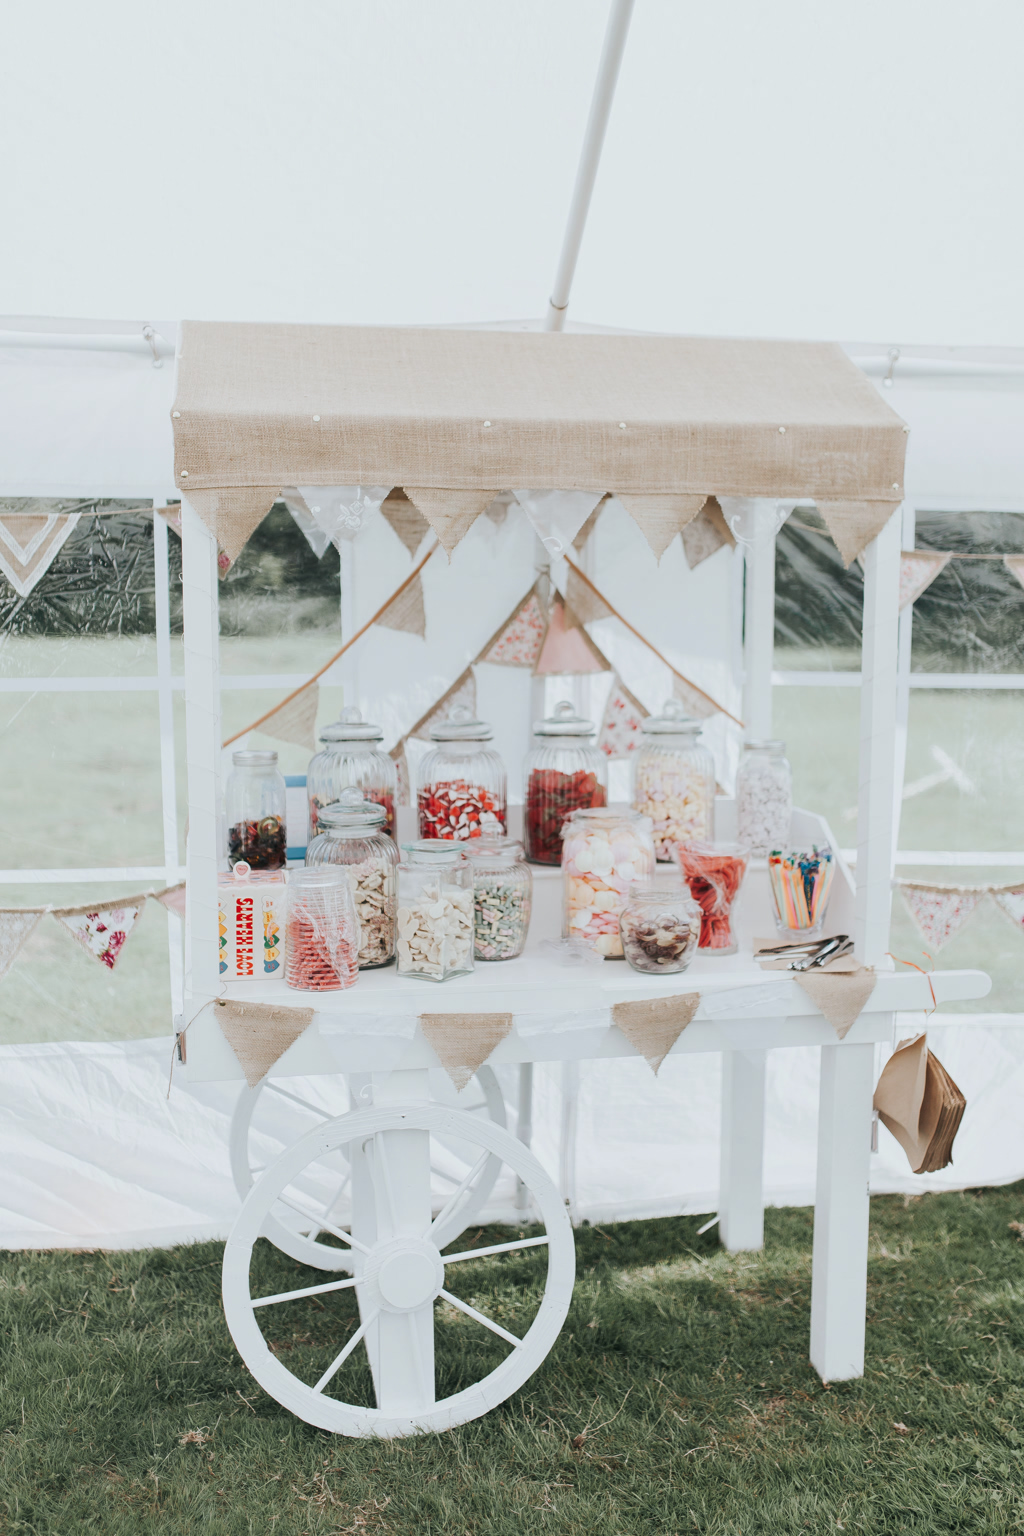 Emily and Phillip's Amazing Rustic DIY Tent Marquee Wedding in a Field in Colchester, Essex! 63